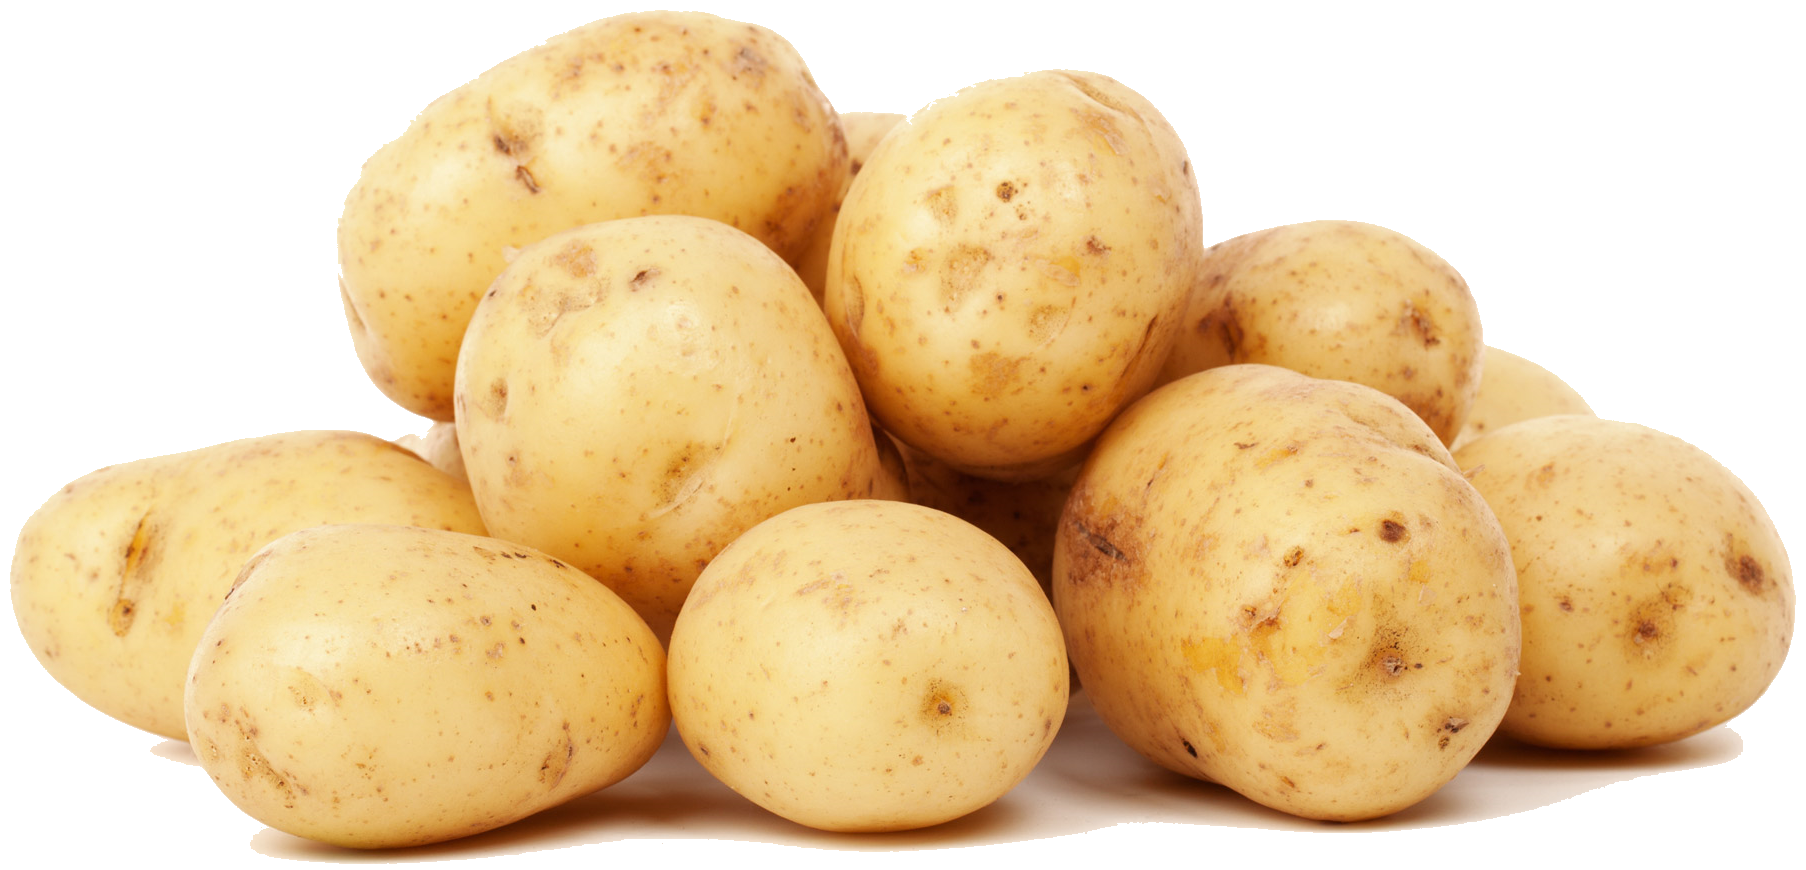 growing potatoes - Potato HD PNG